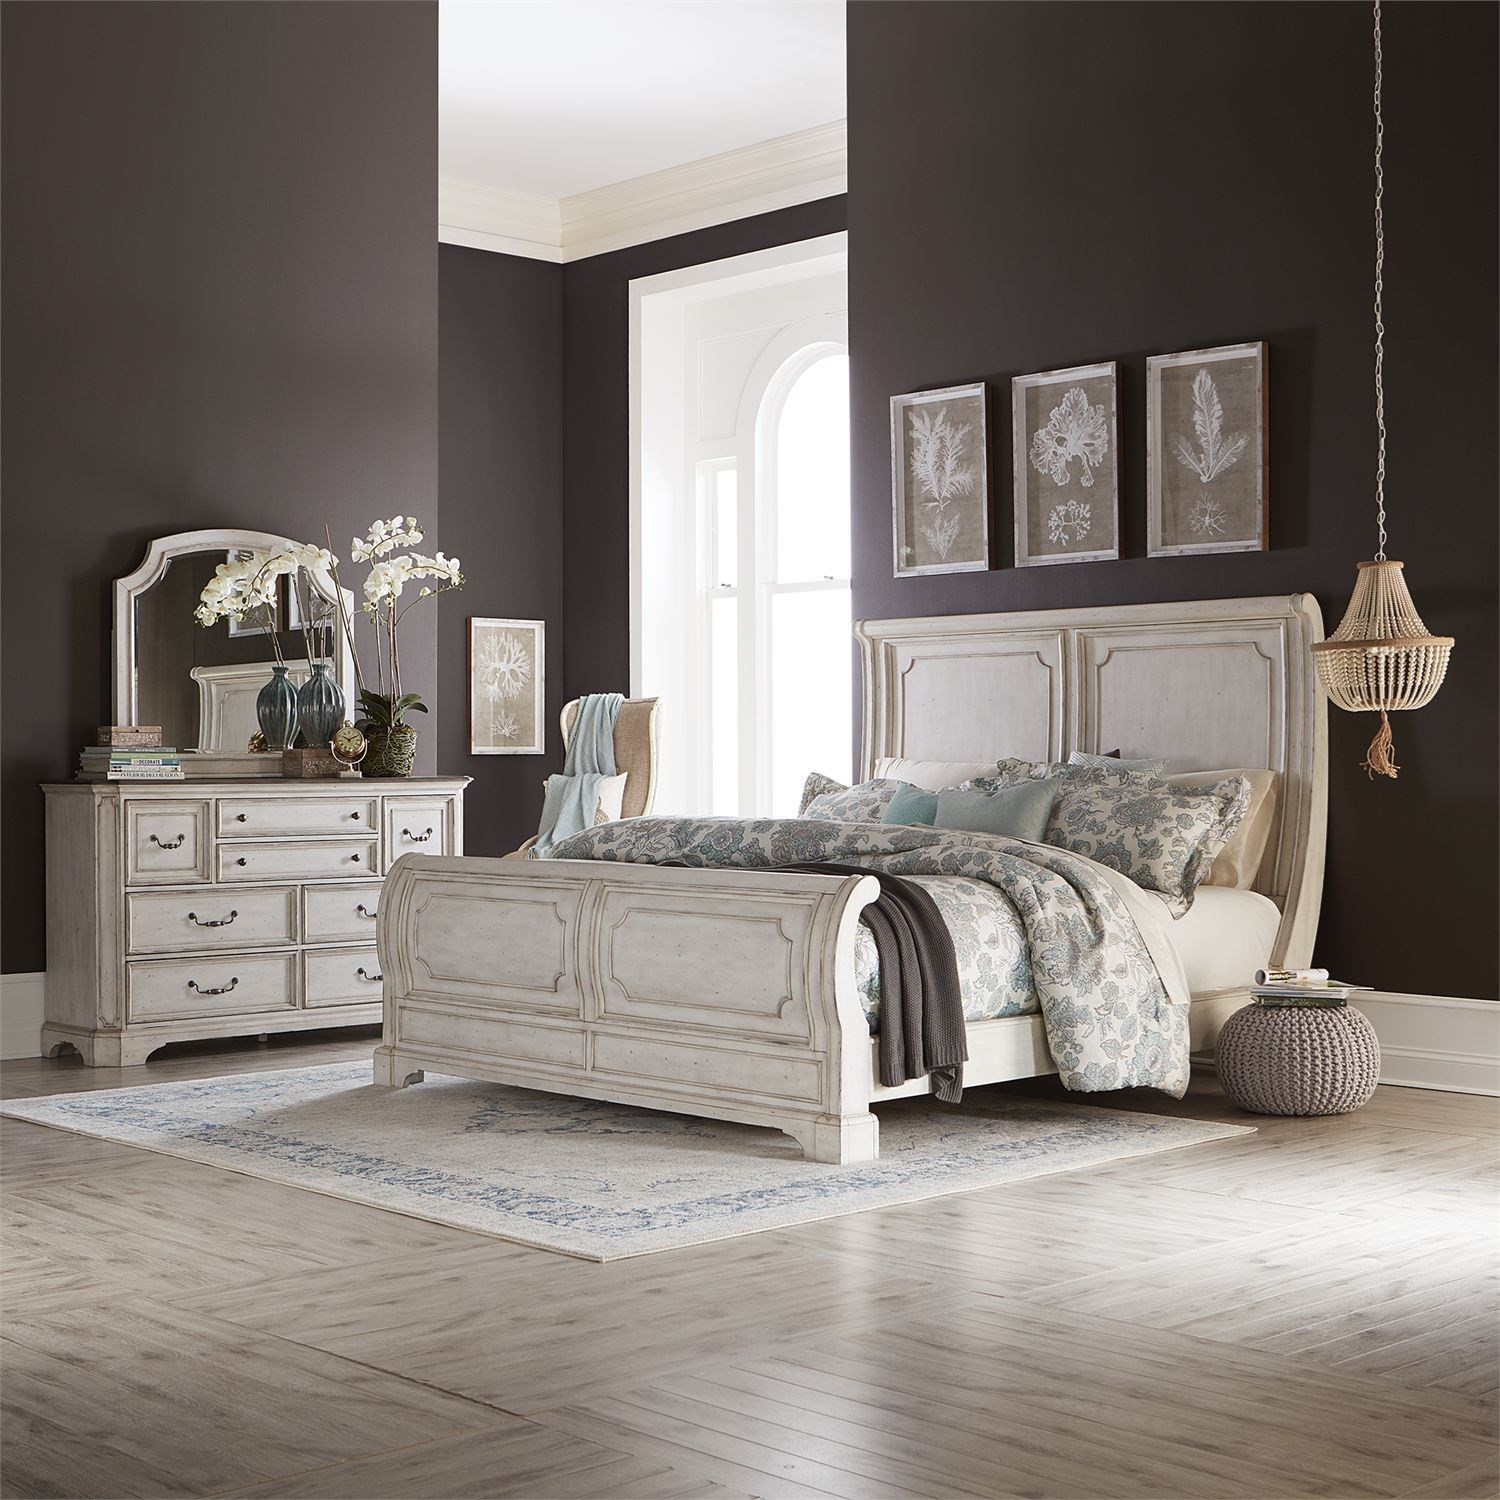 Abbey Road Queen Bedroom Group by Liberty Furniture at Coconis Furniture & Mattress 1st